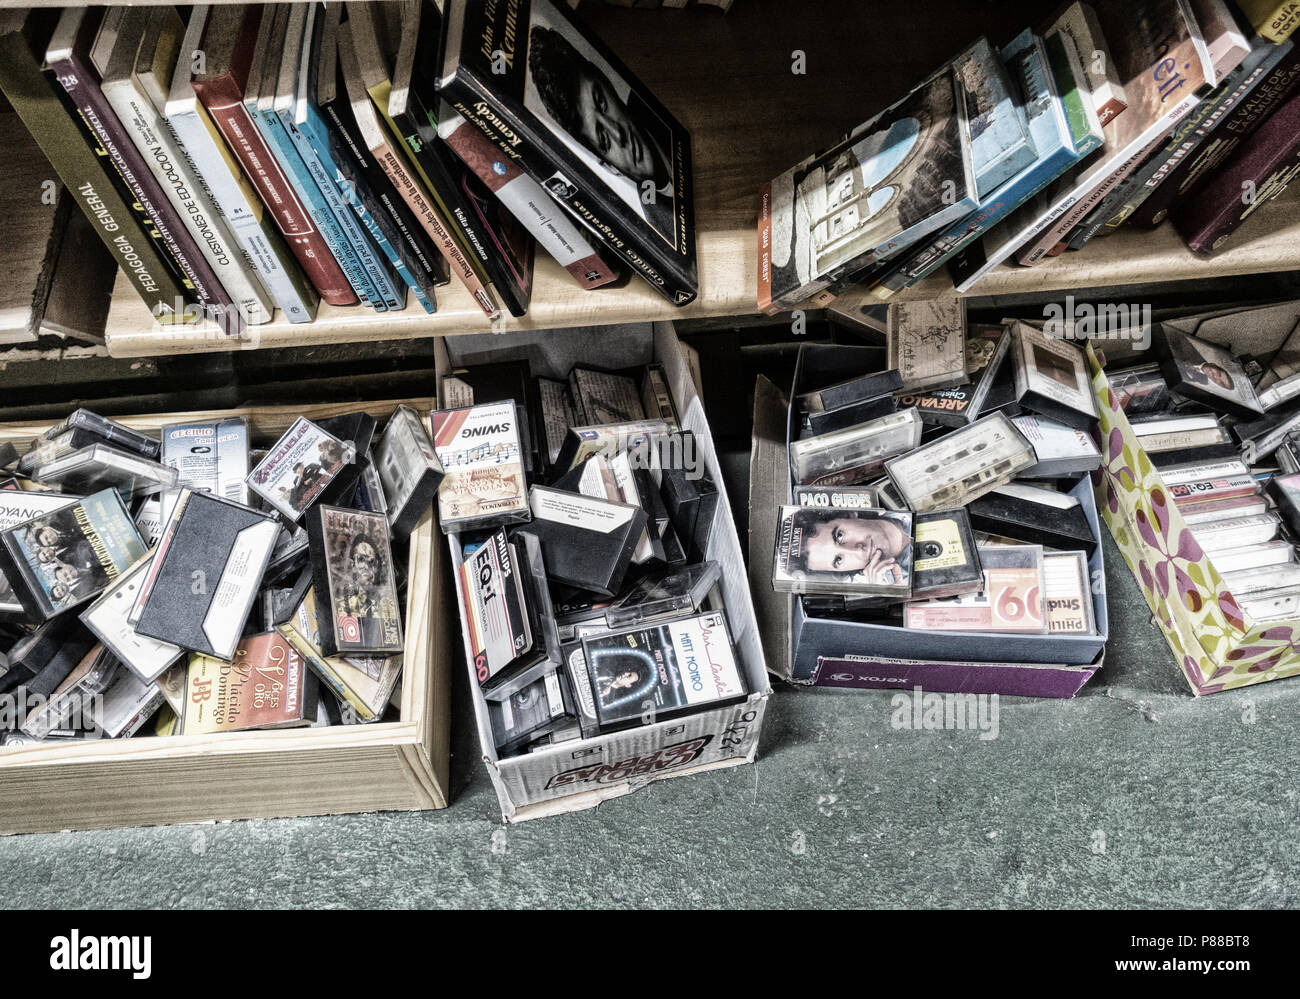 Boxes of cassette tapes and books in charity shop in Spain - Stock Image